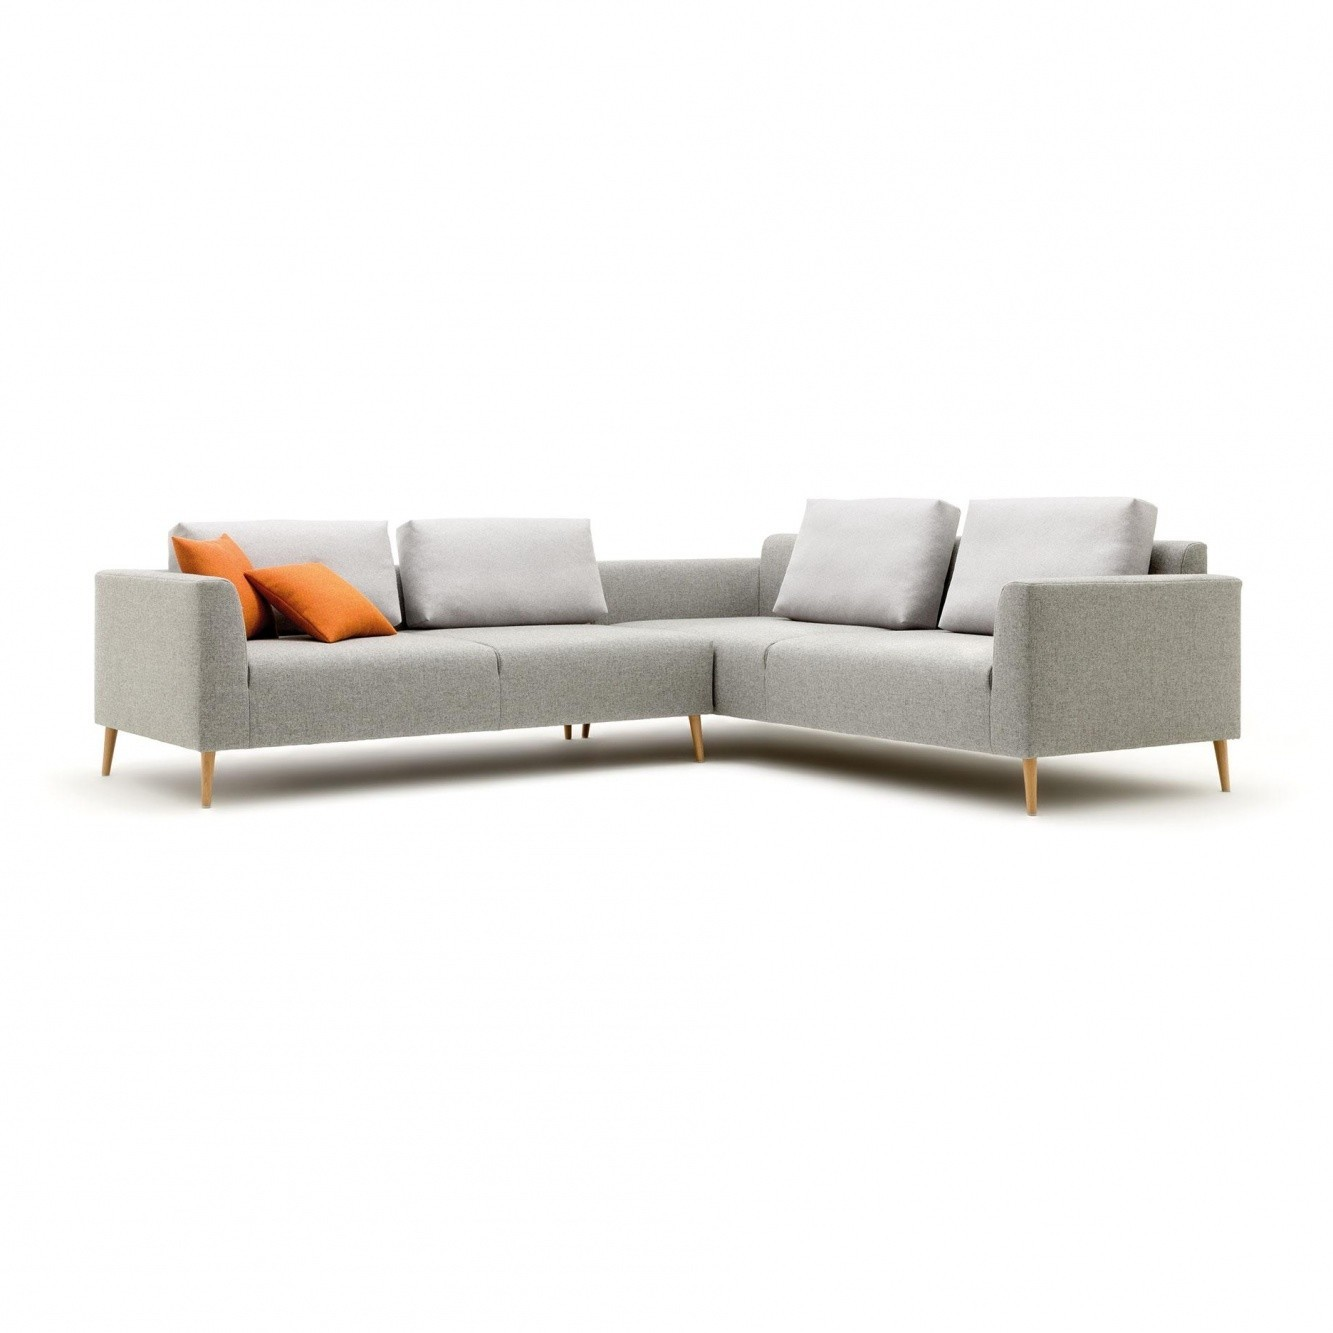 Freistil Ecksofa Freistil 162 Sofa